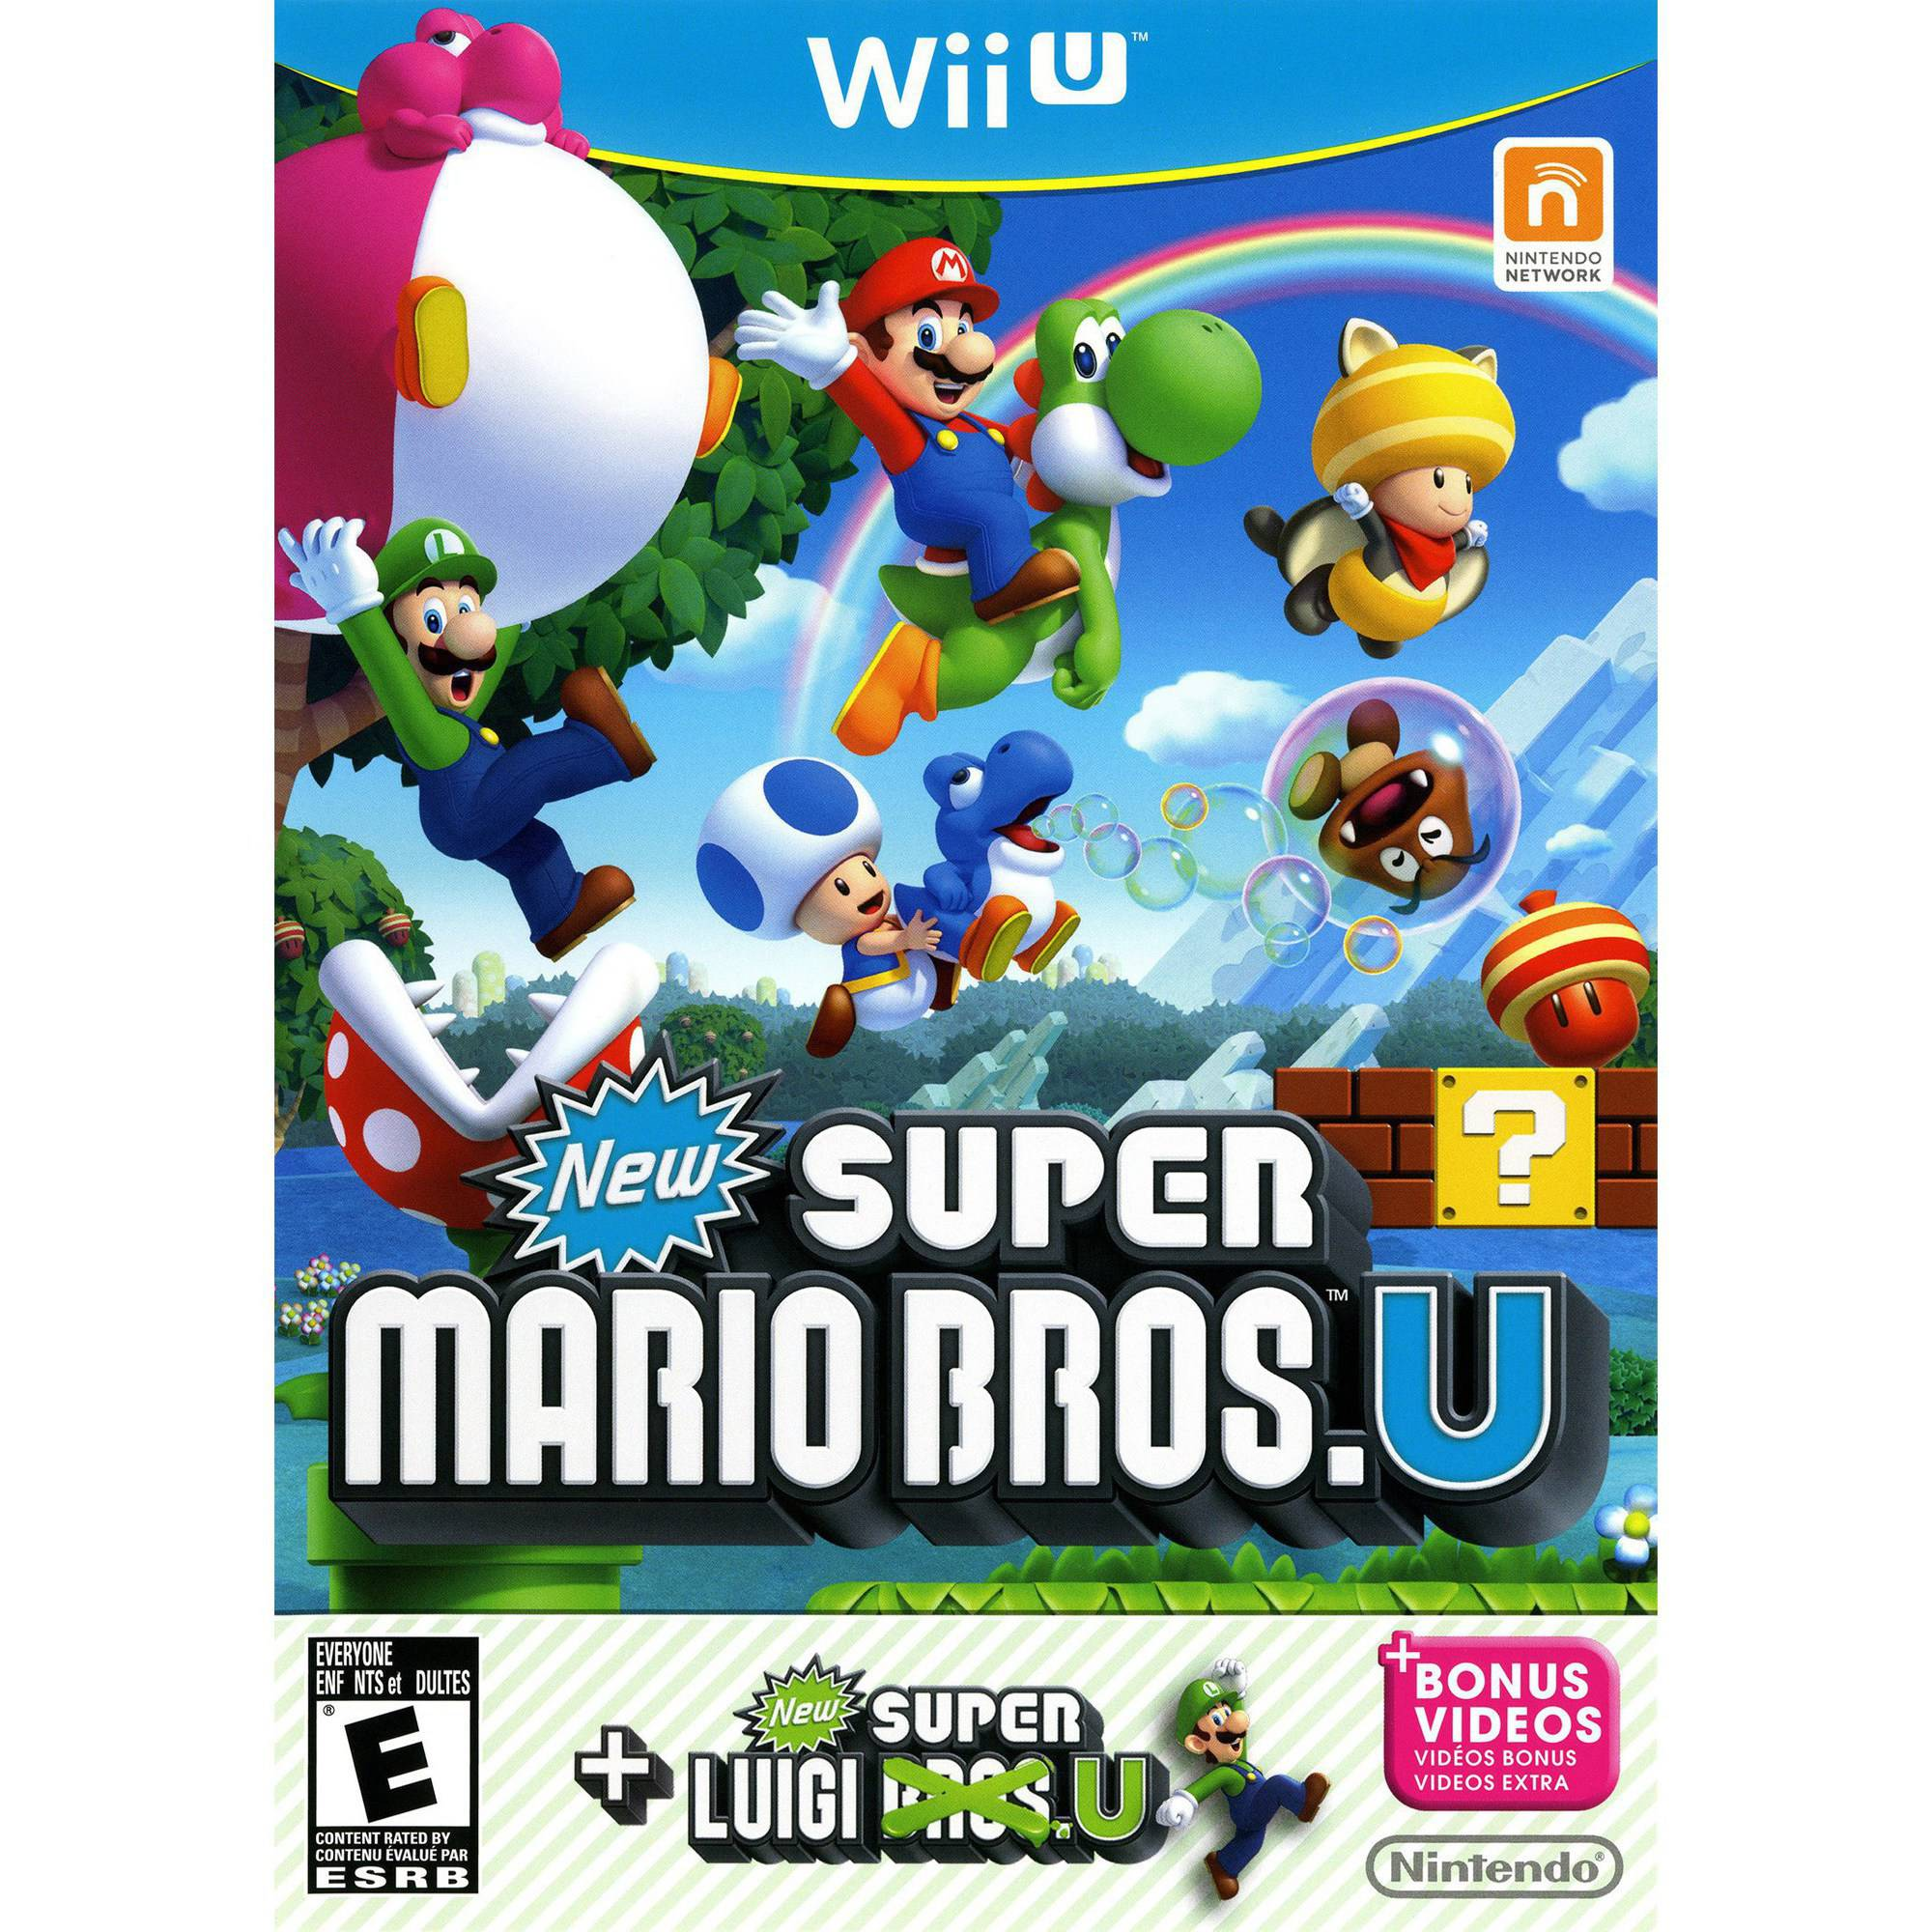 New Super Mario Bros U + New Super Luigi U, Nintendo, Nintendo Wii U, 045496903749